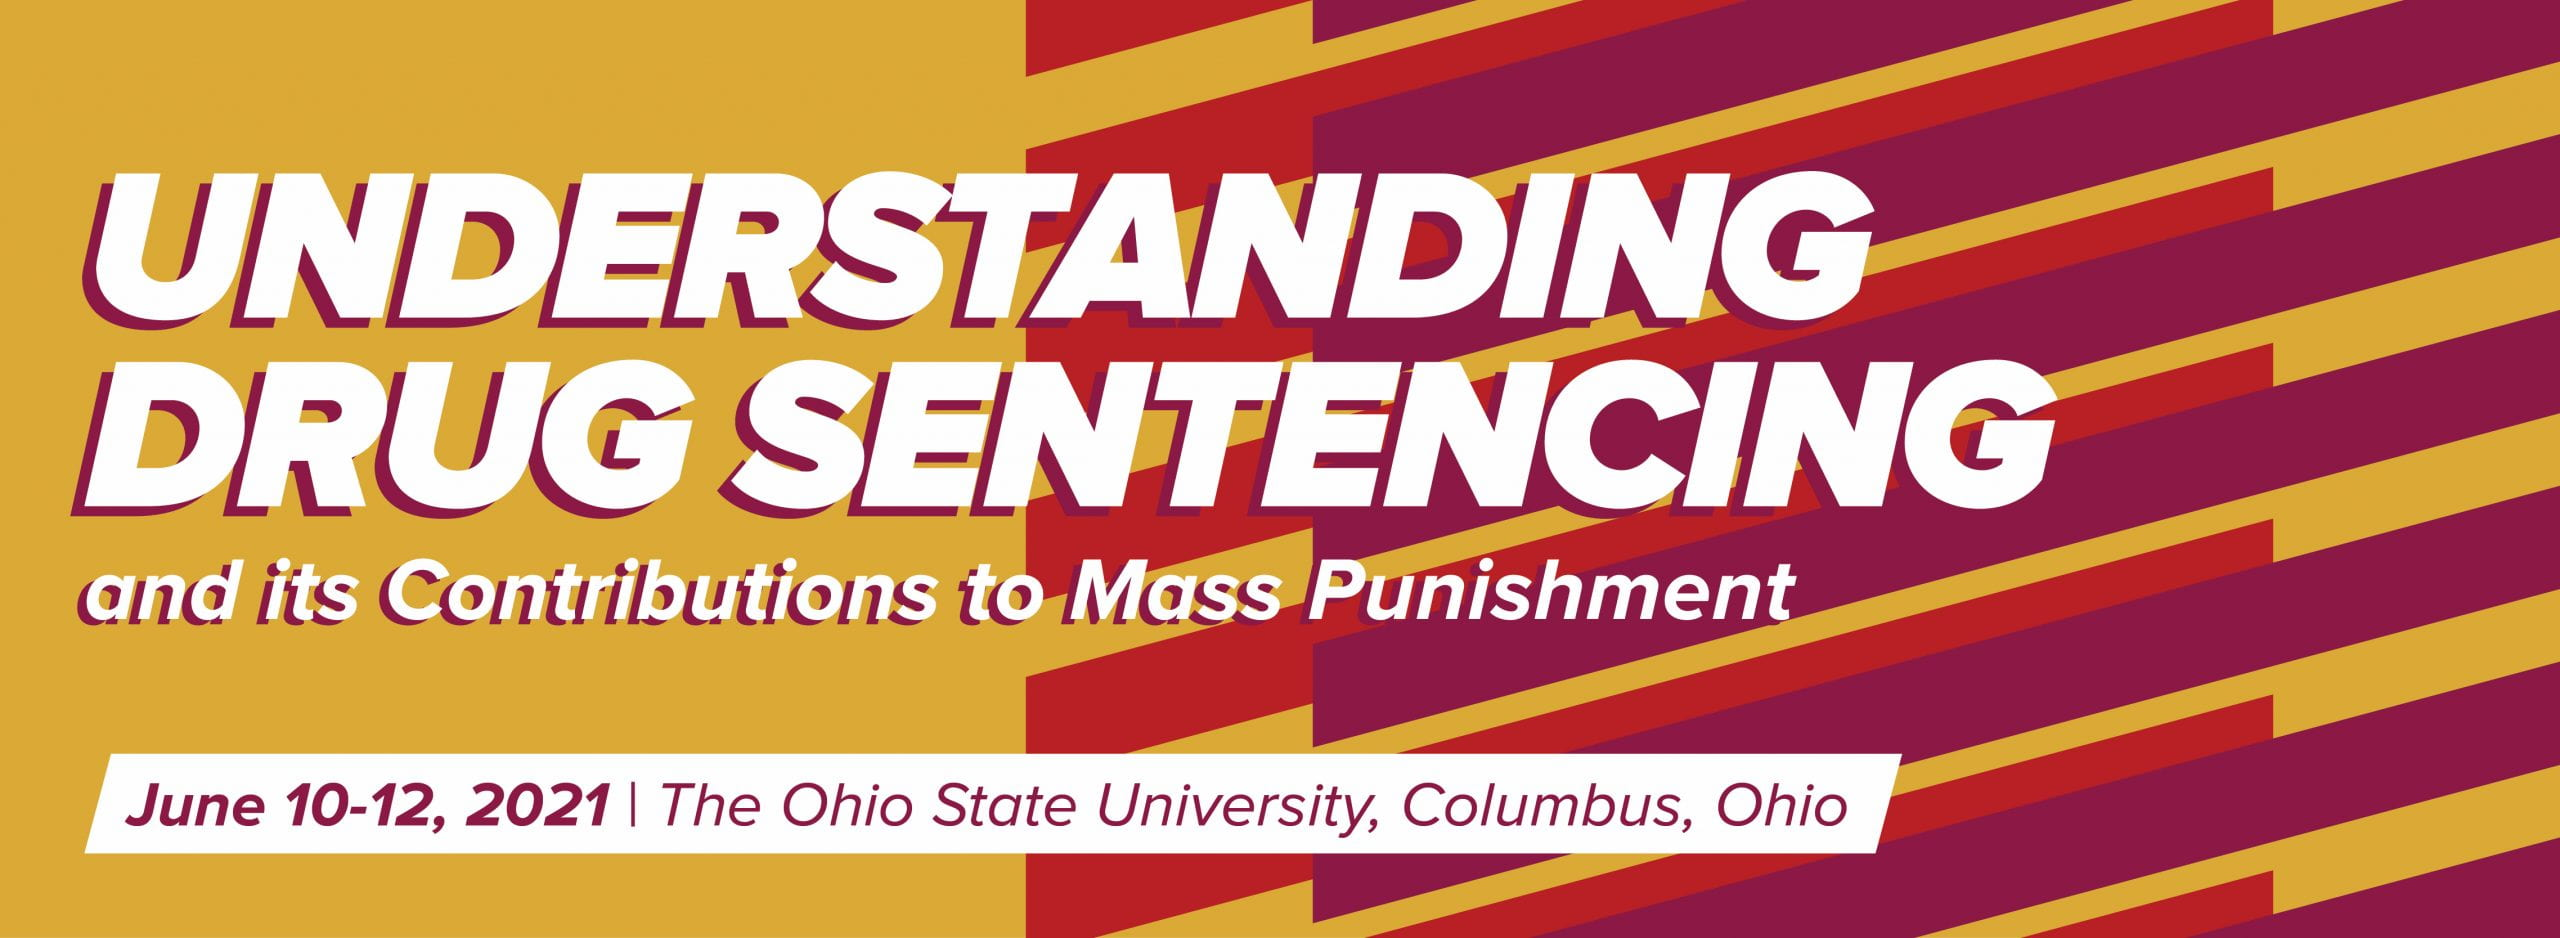 Understanding Drug Sentencing and its Contributions to Mass Punishment